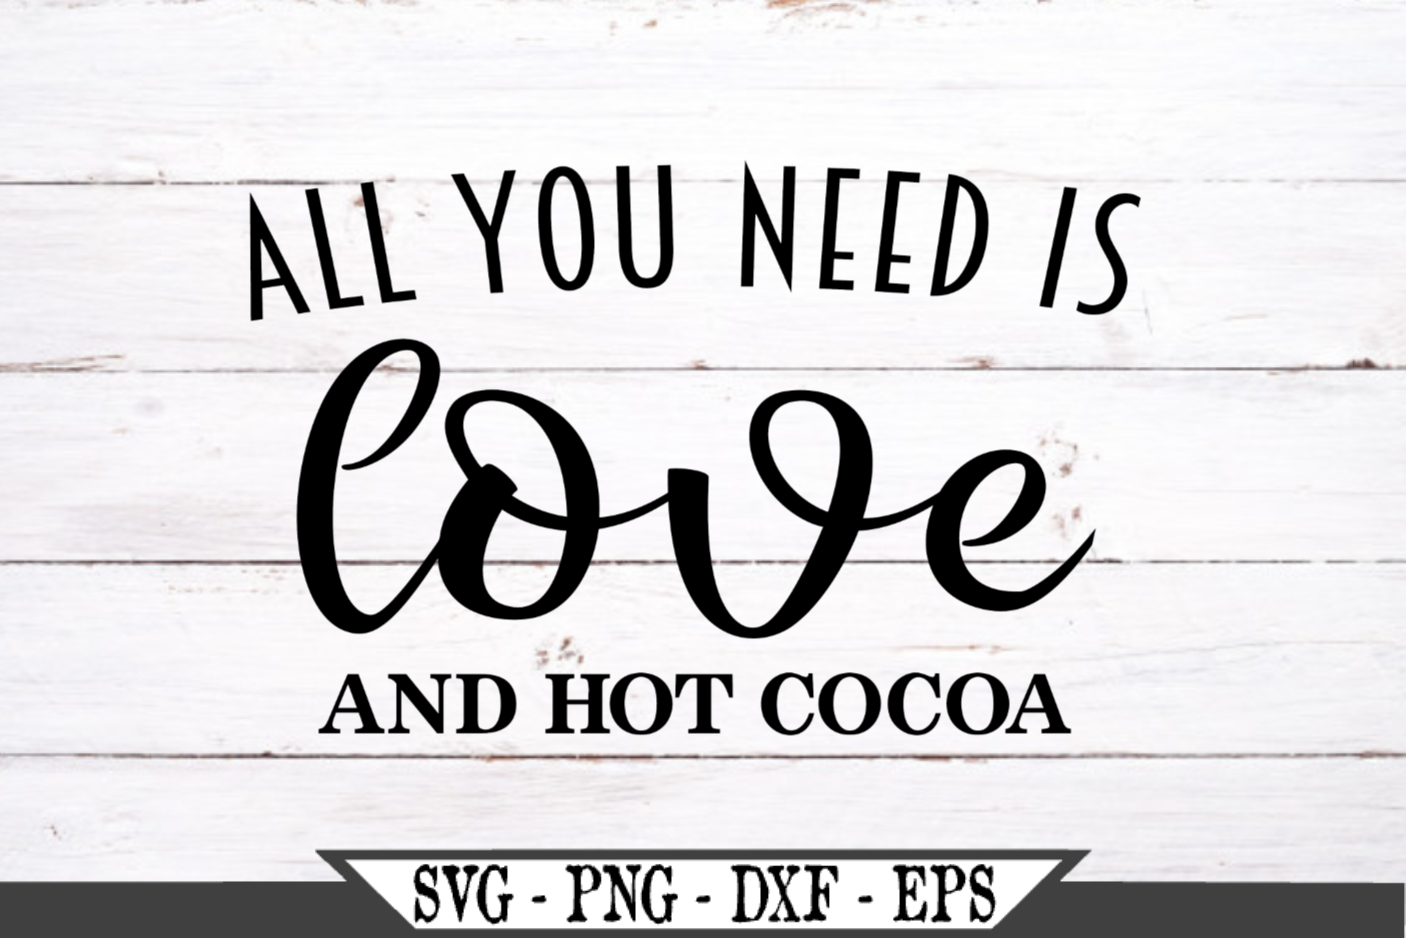 All You Need Is Love And Hot Cocoa SVG example image 2